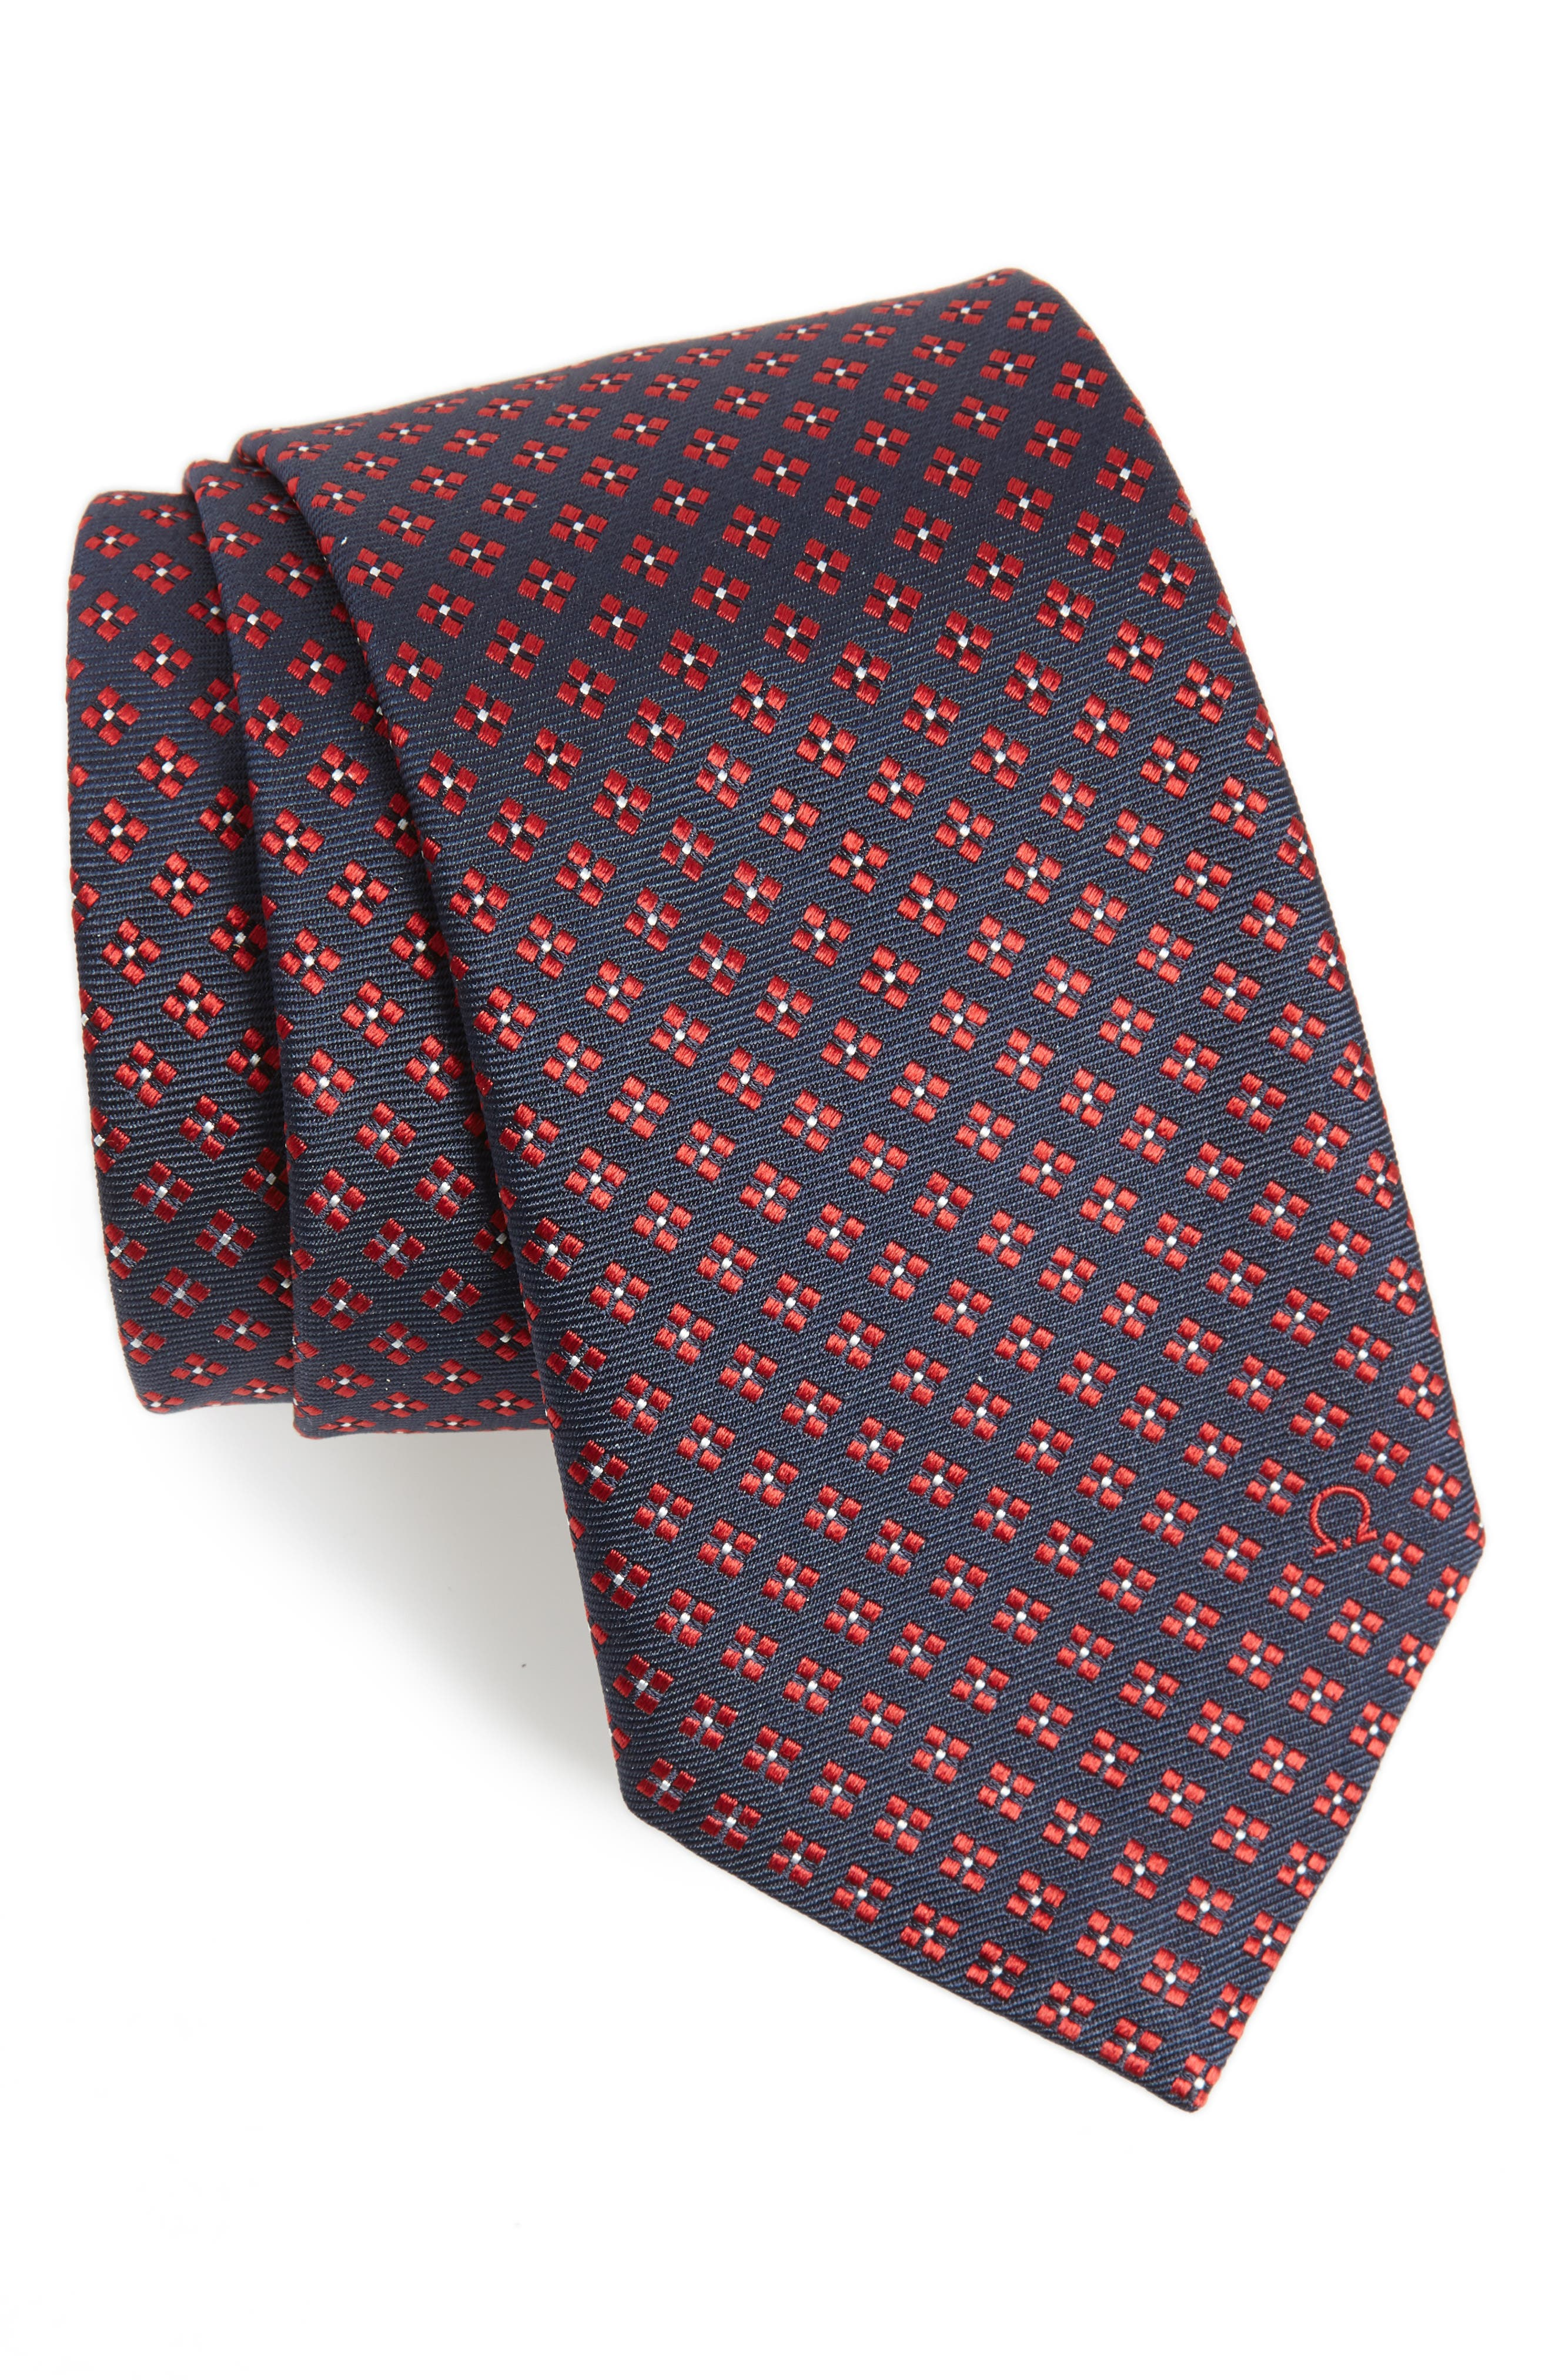 Empol Geometric Silk Tie,                             Main thumbnail 1, color,                             NAVY/ RED